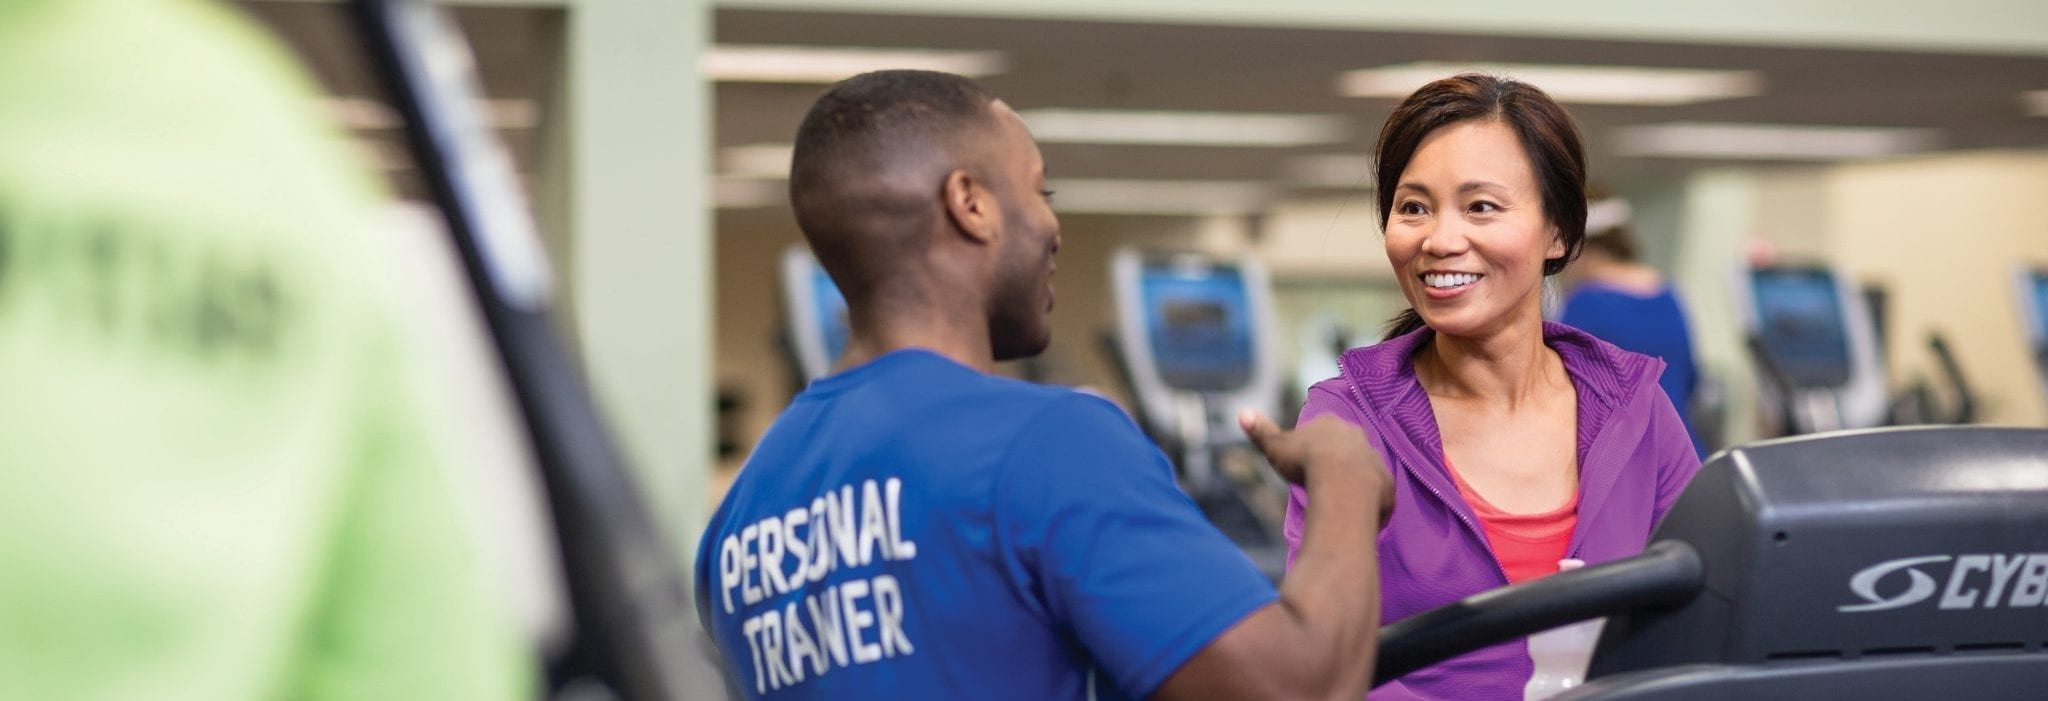 person trainer training woman on treadmill